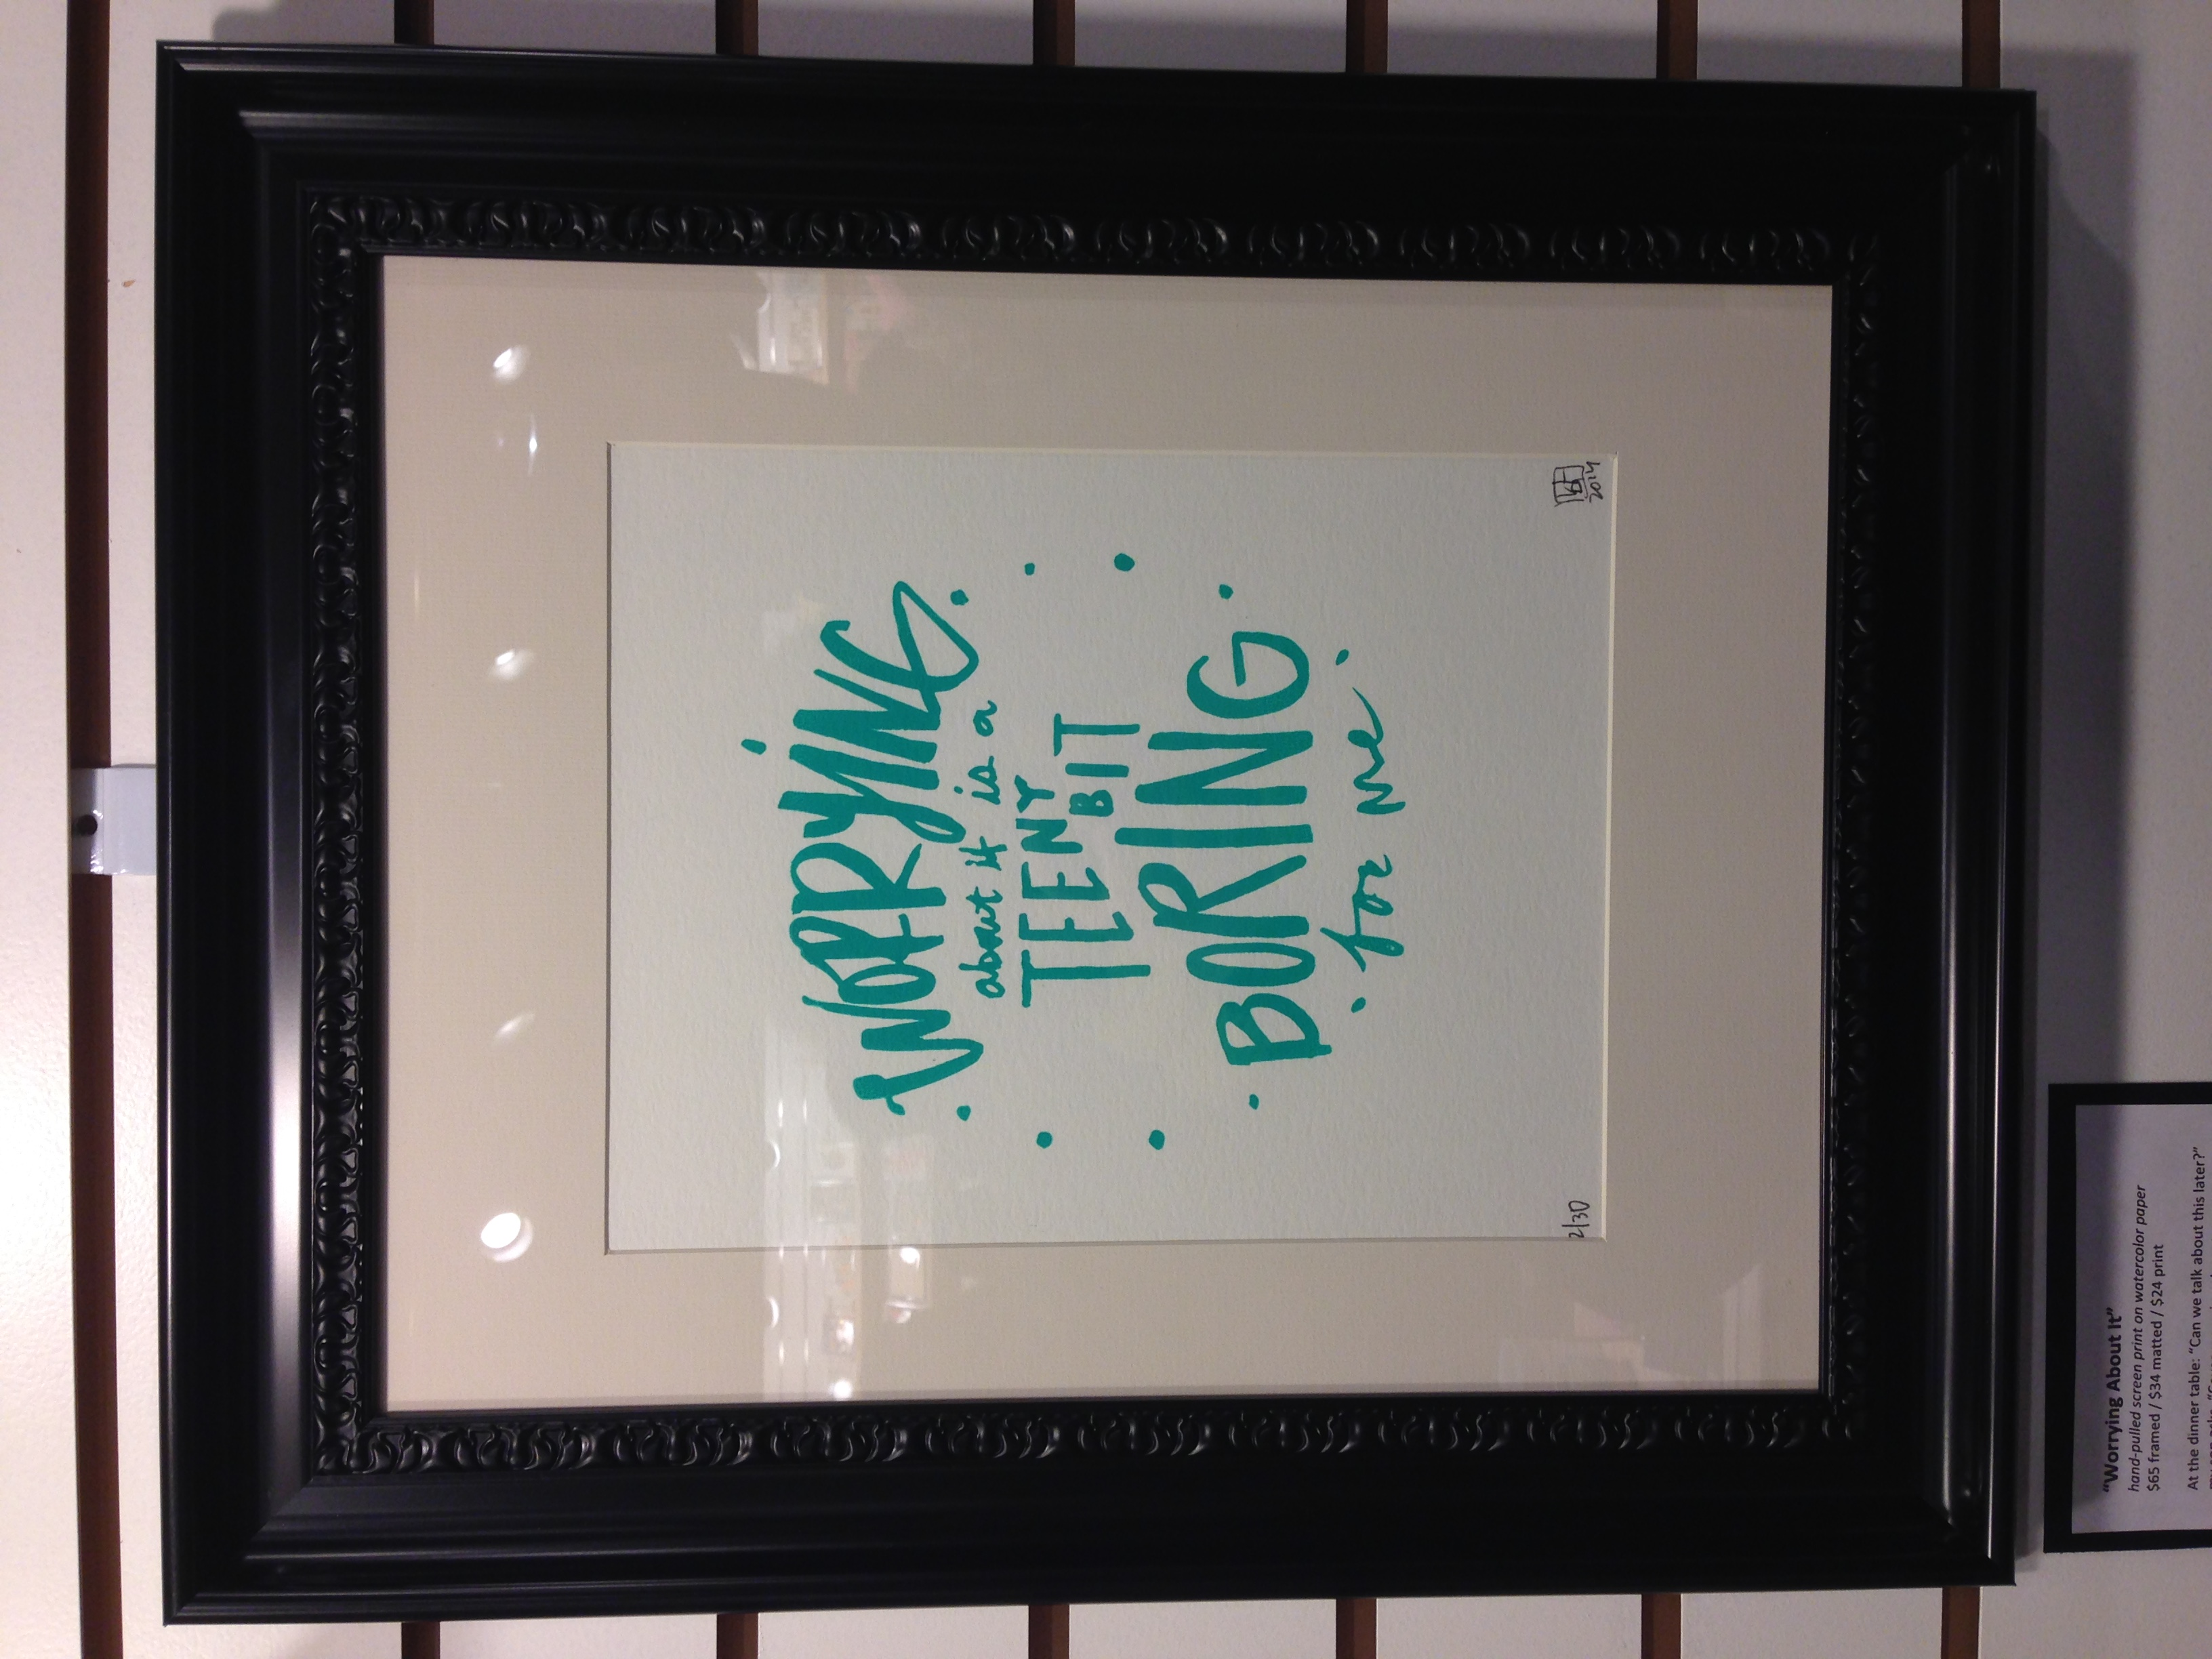 Kindred Post proprietor  Christy Namee Eriksen debuted   the latest installment of Growing Upwords prints.  This deeper-than-deep quote is from her five year old son. Nothing like a stark reminder from a kiddo about the needlessness of worrying.